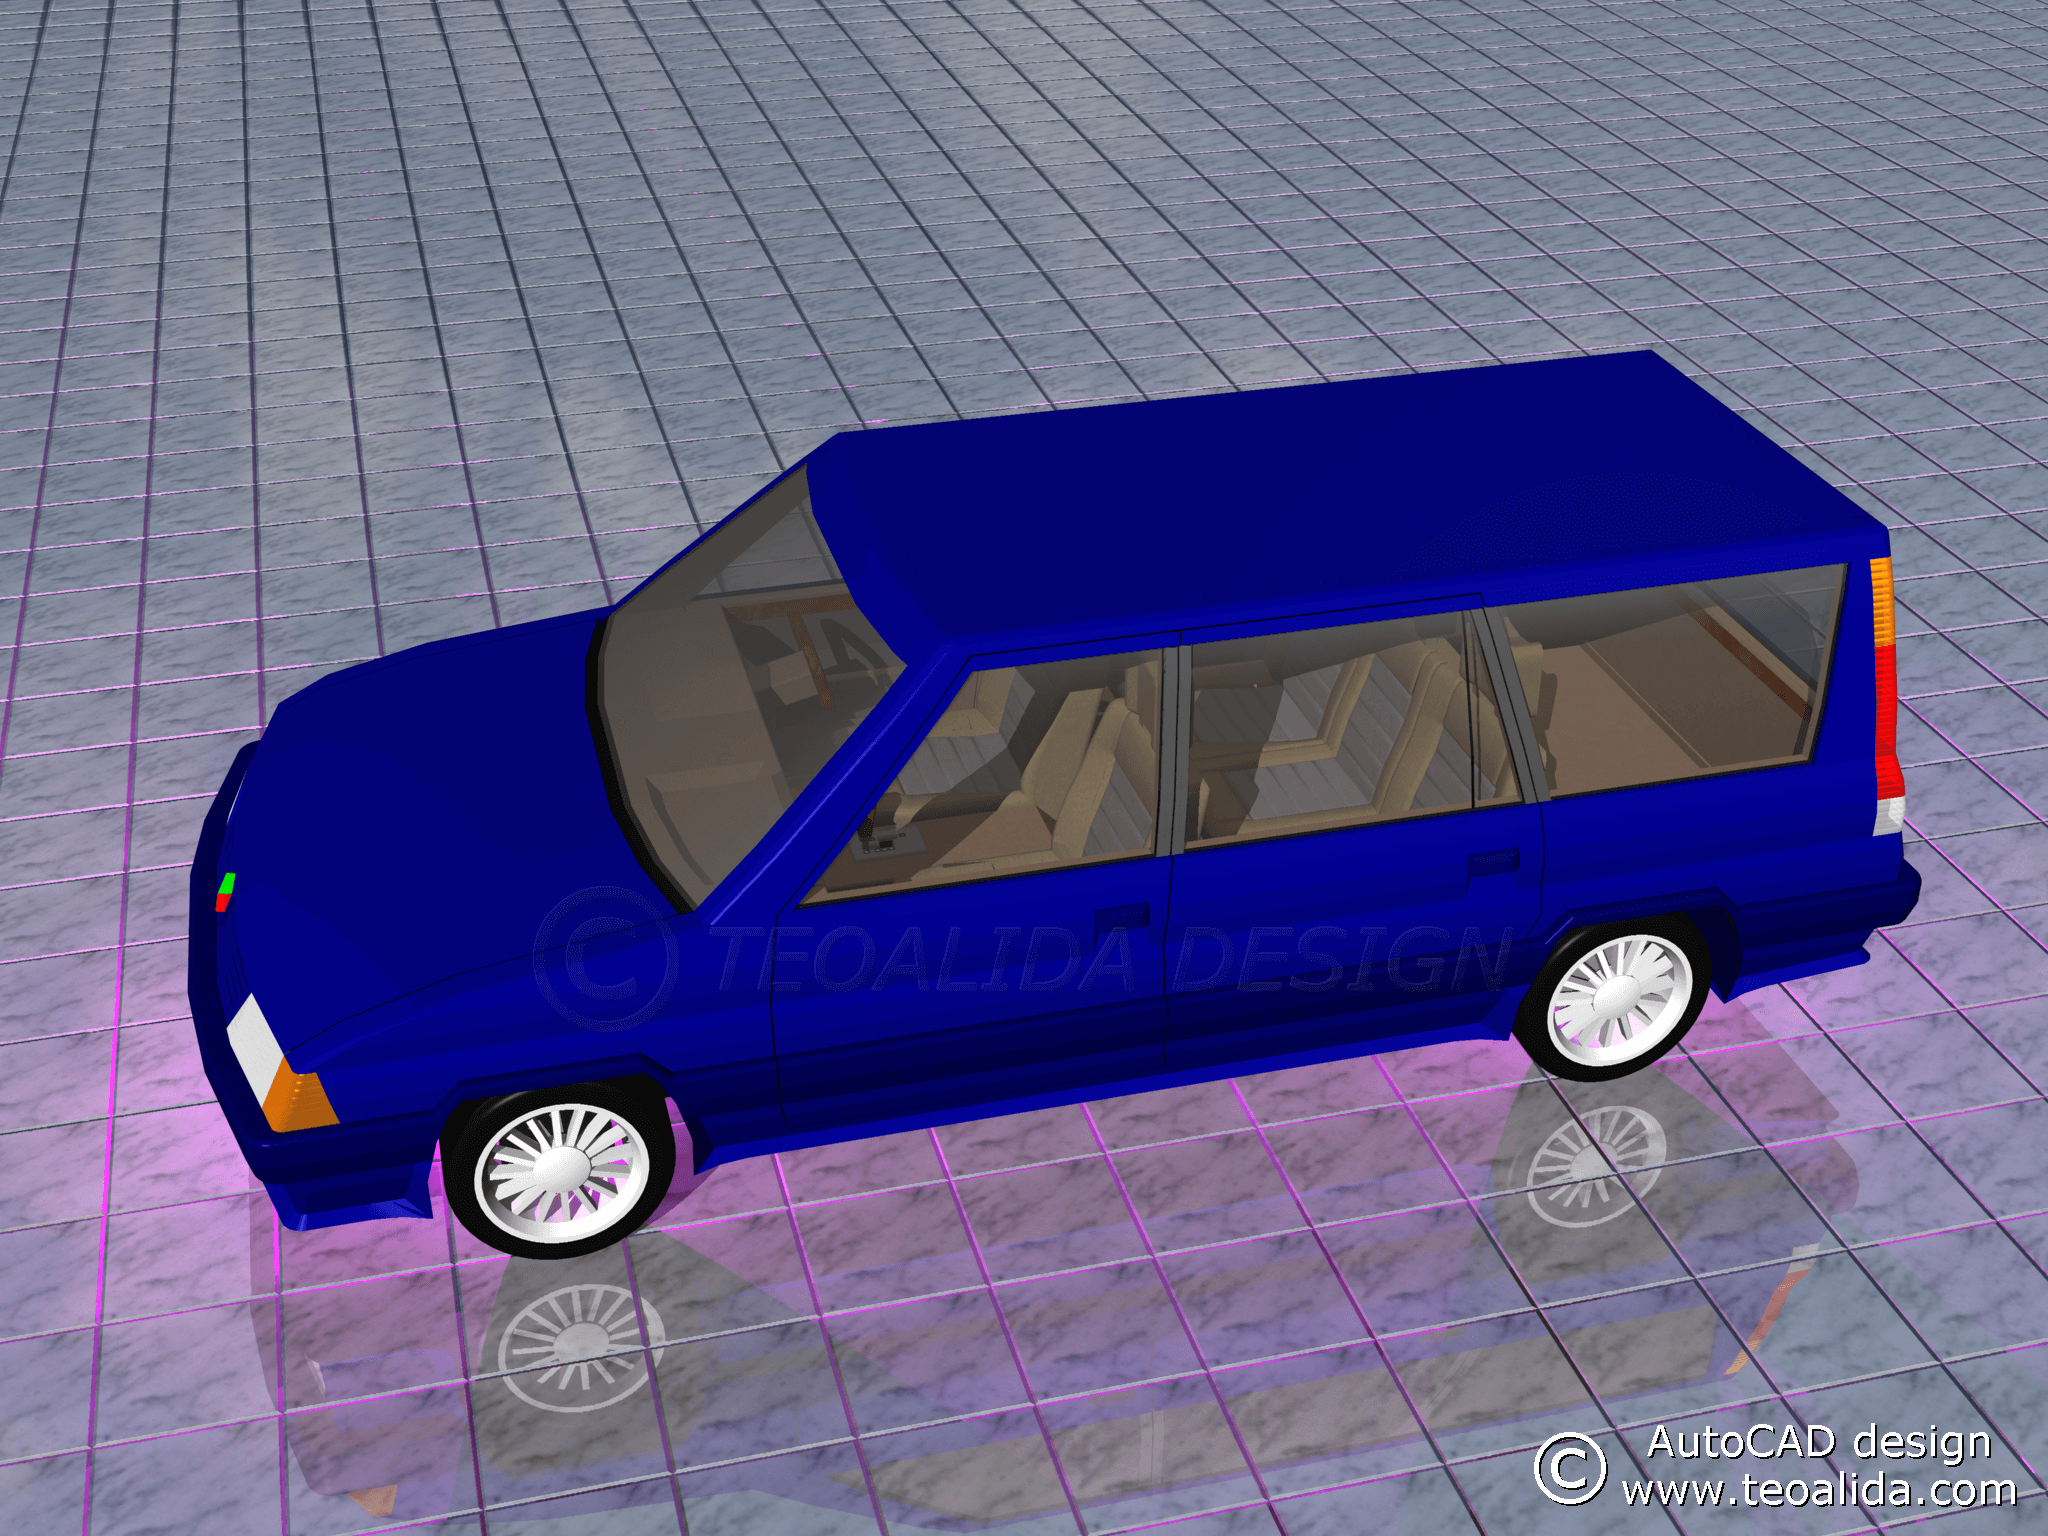 AutoCAD 3D Car Design | Teoalida Website